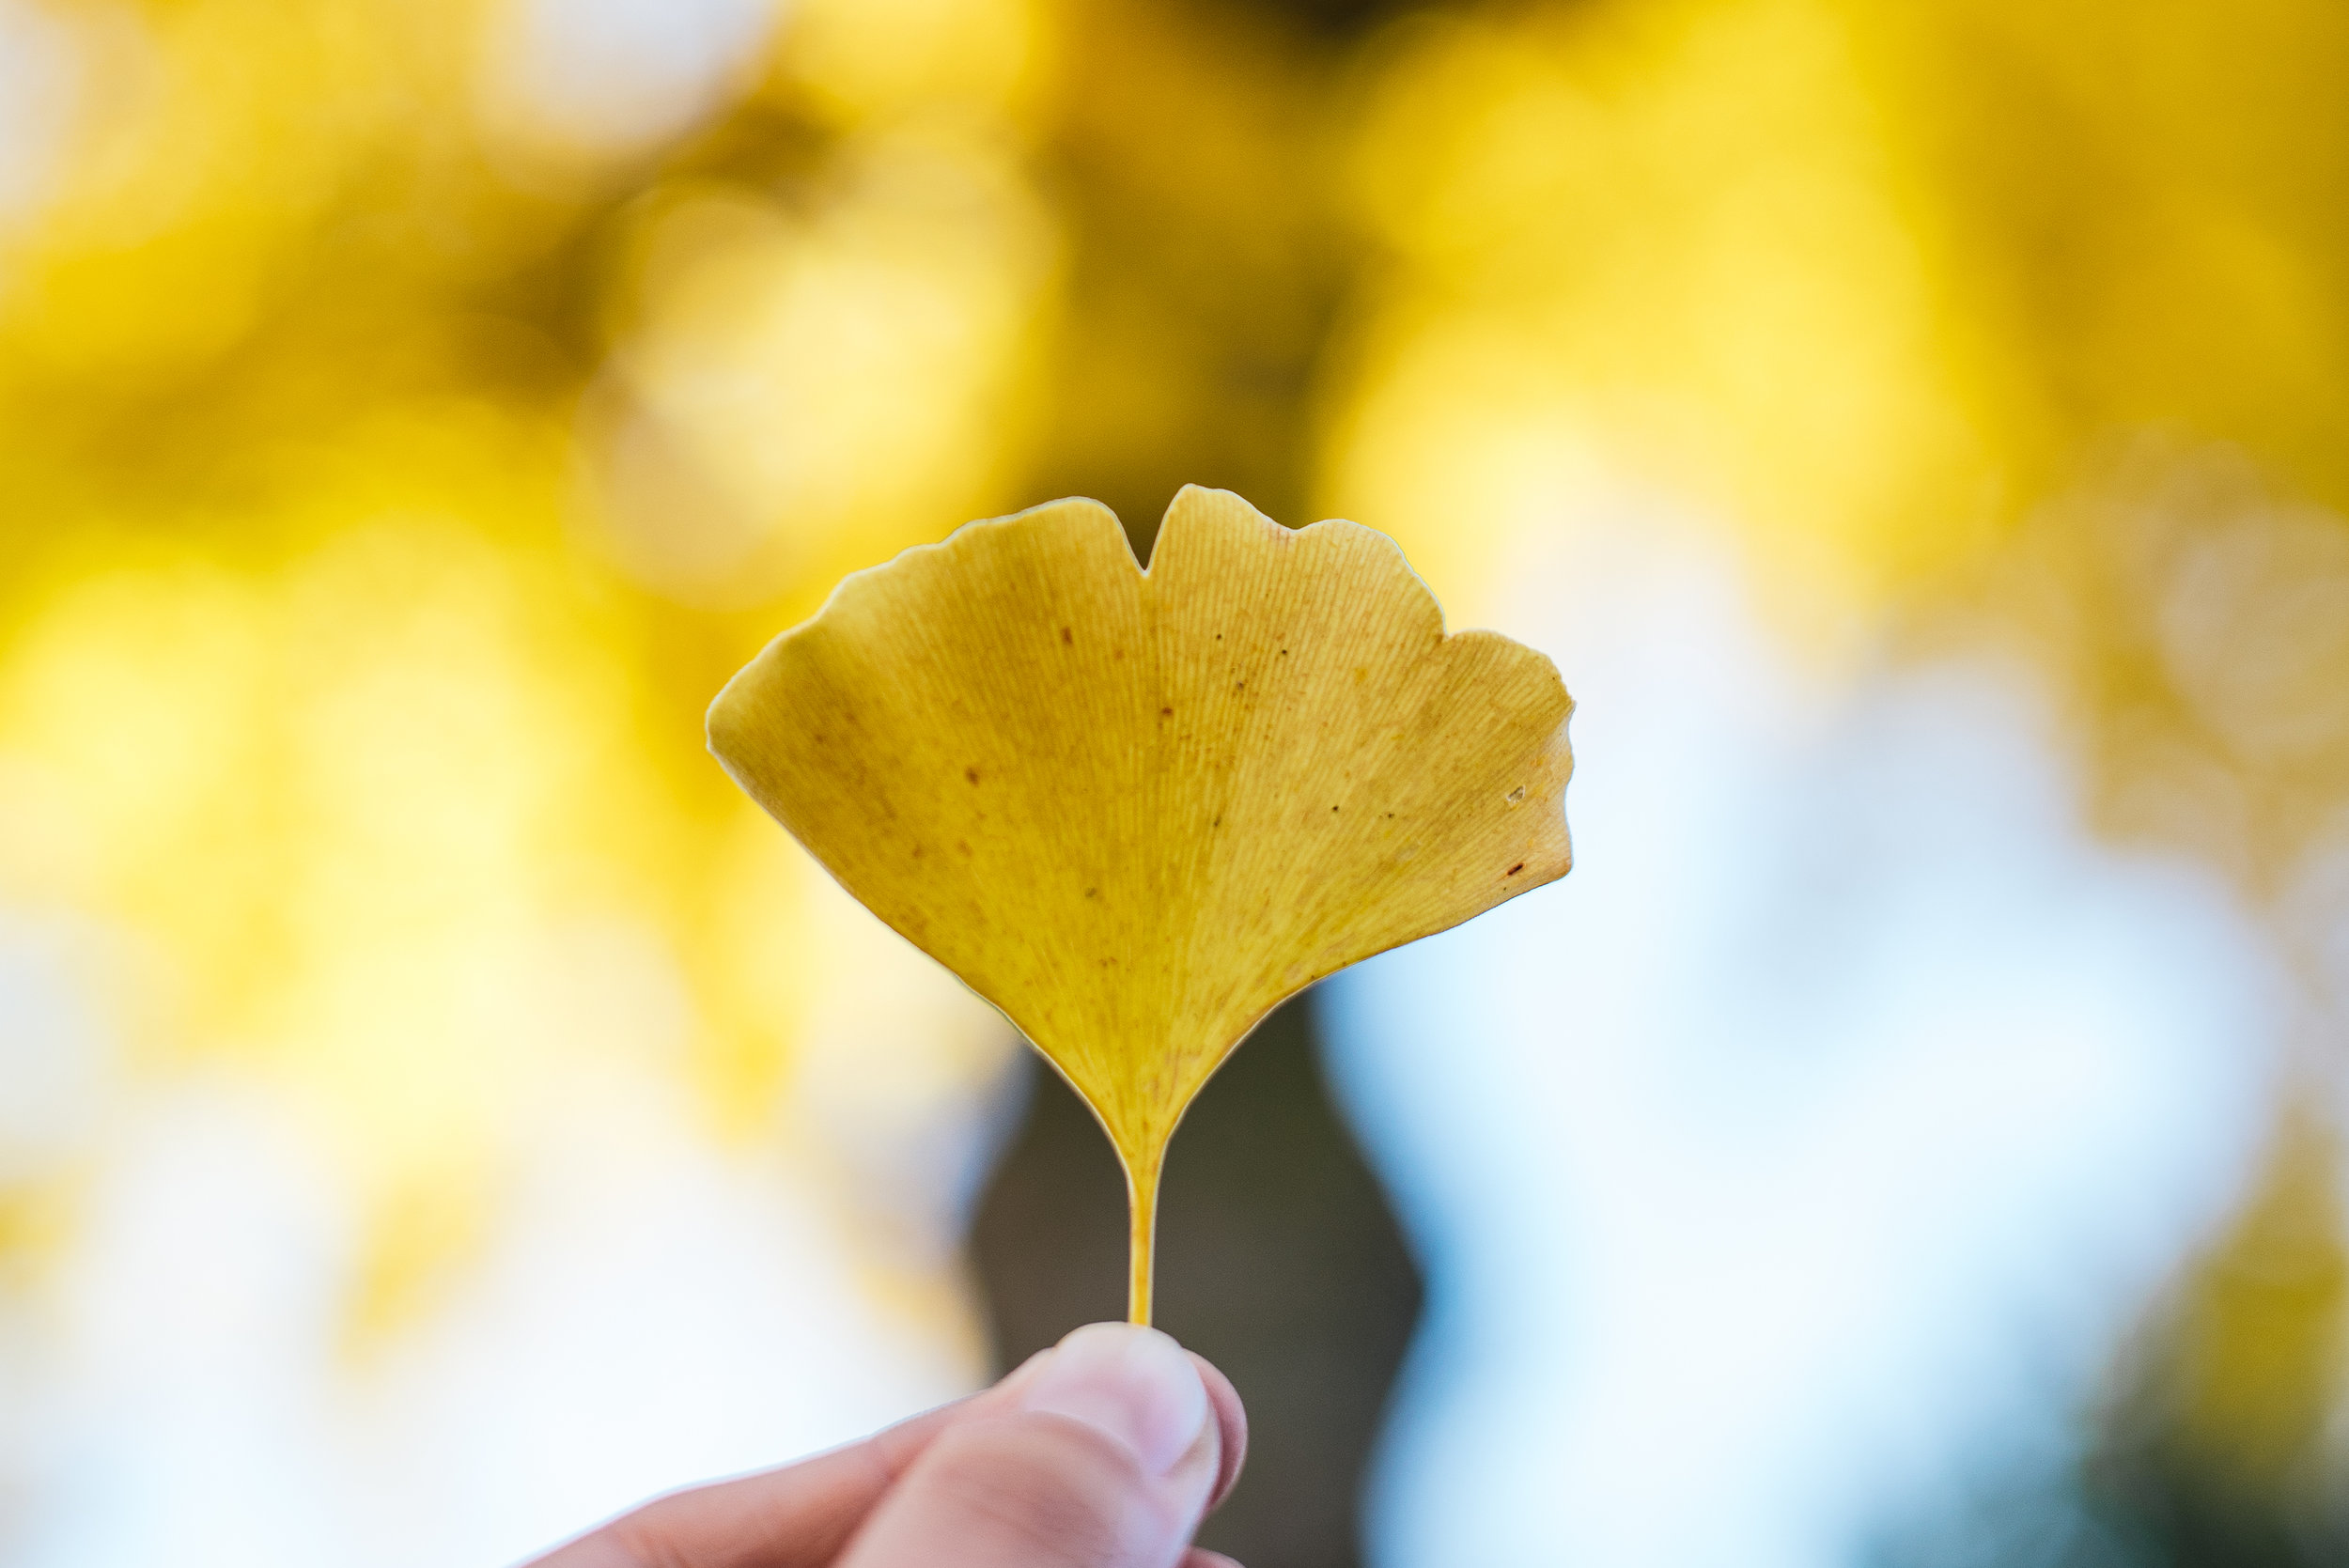 DAY 4 - I am thankful for the beautiful weather we have had so far this month. For the chance it has afforded us to spend extra time outside. For the prolonged season of spectacular fall colors and the way the glorious sunshine illuminated this ginkgo tree today.